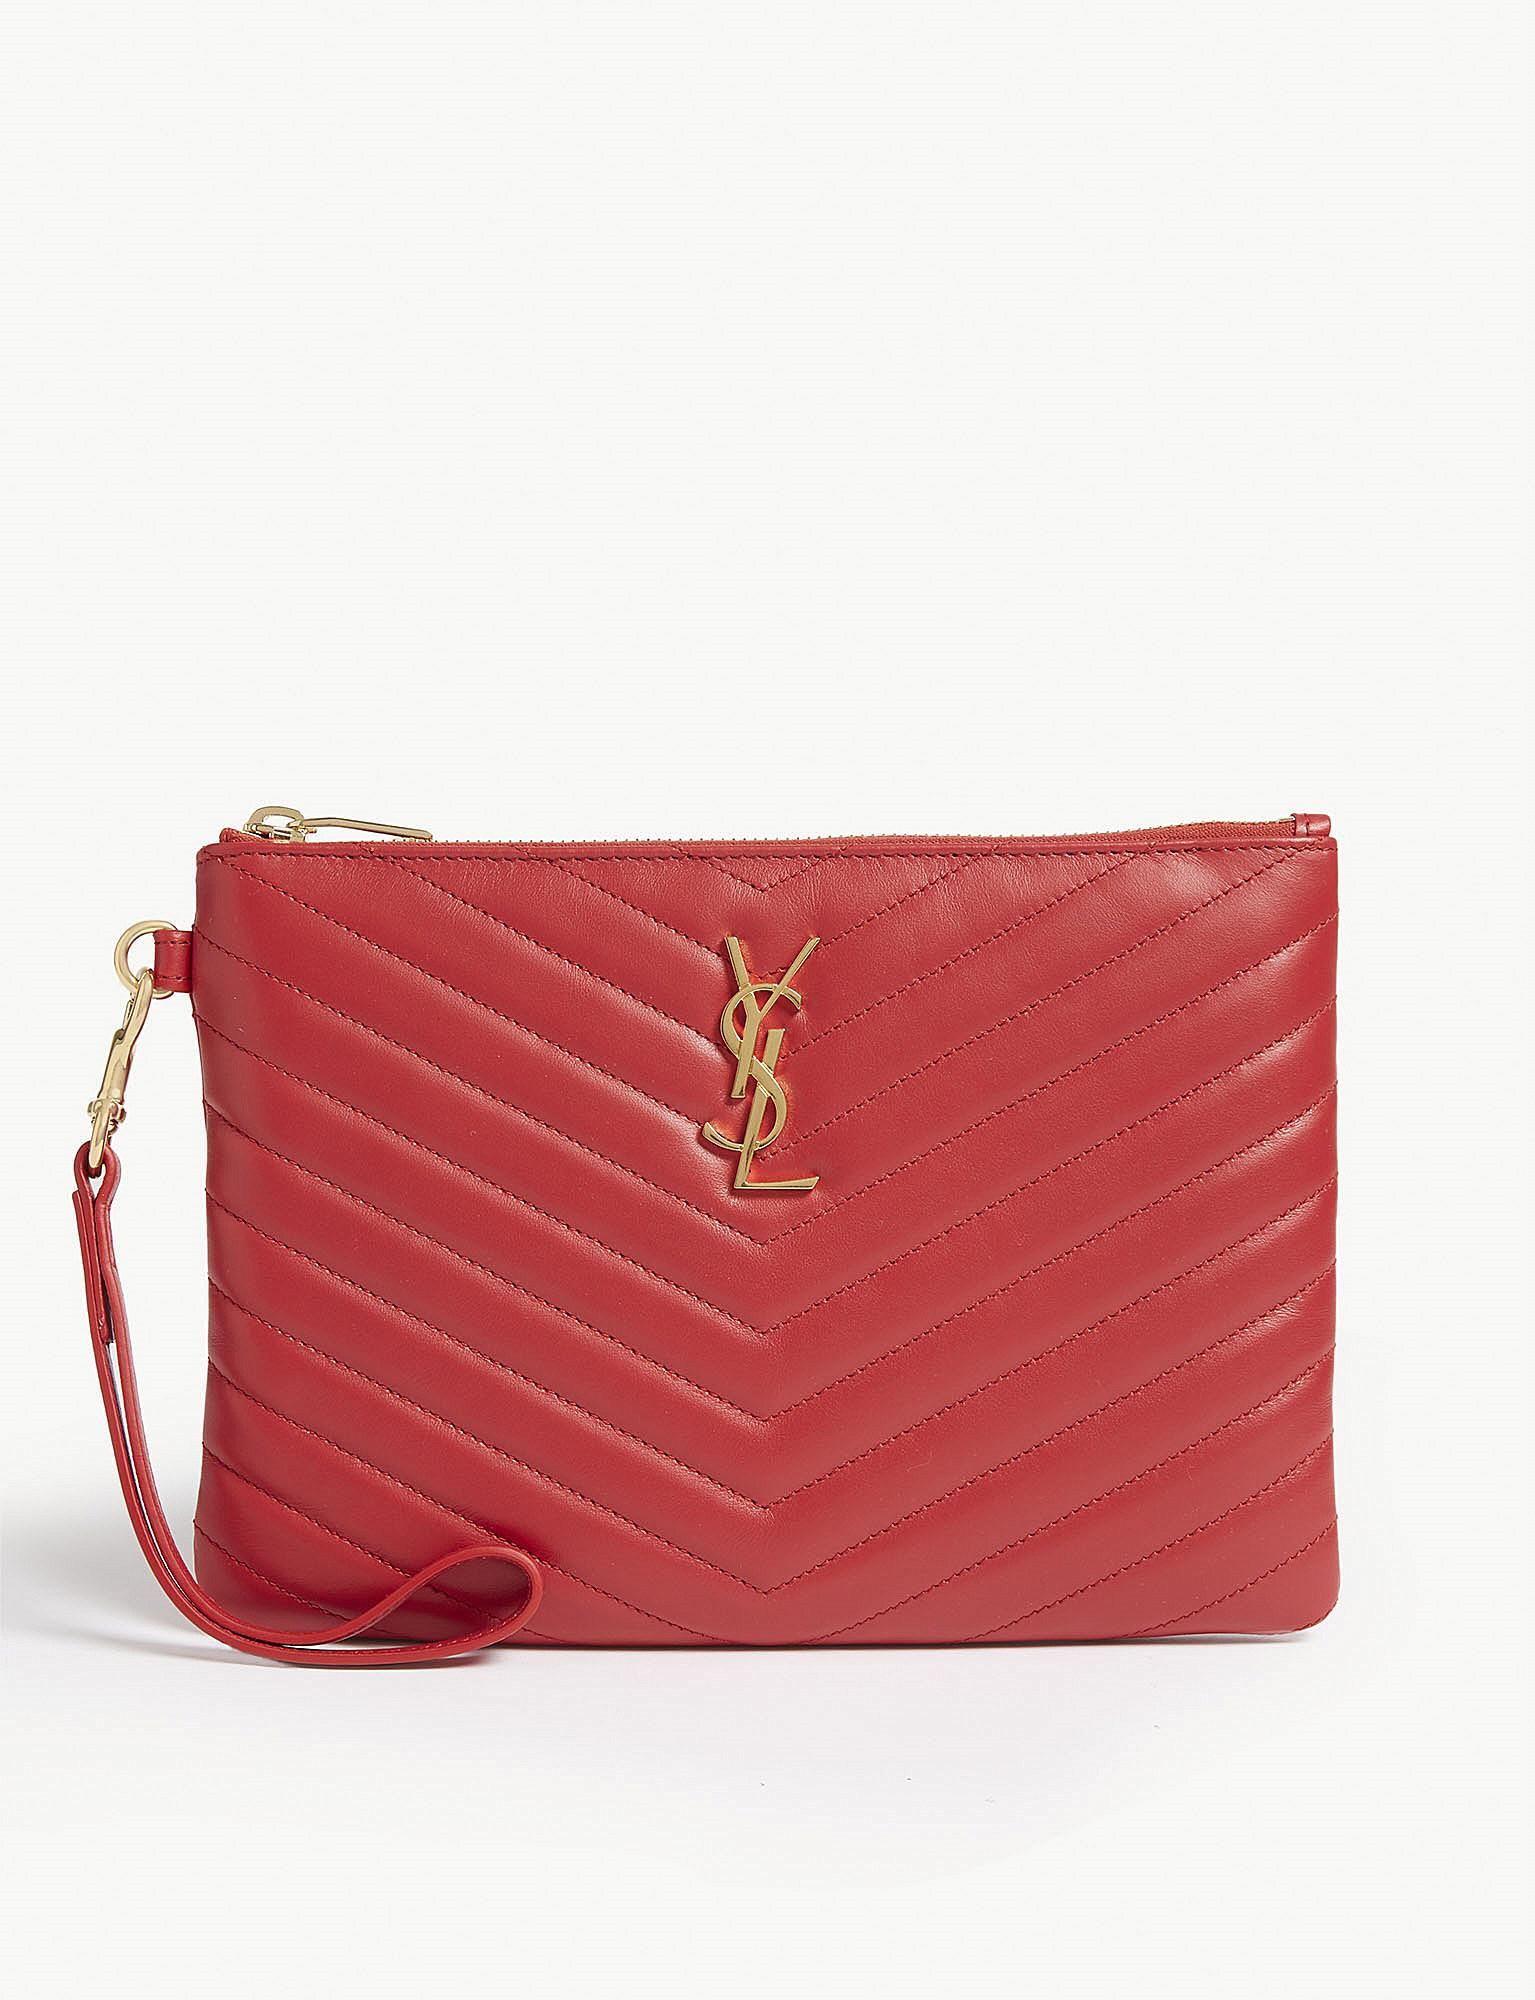 e352c2abe440 Saint Laurent Monogram Logo Quilted Leather Pouch in Red - Lyst